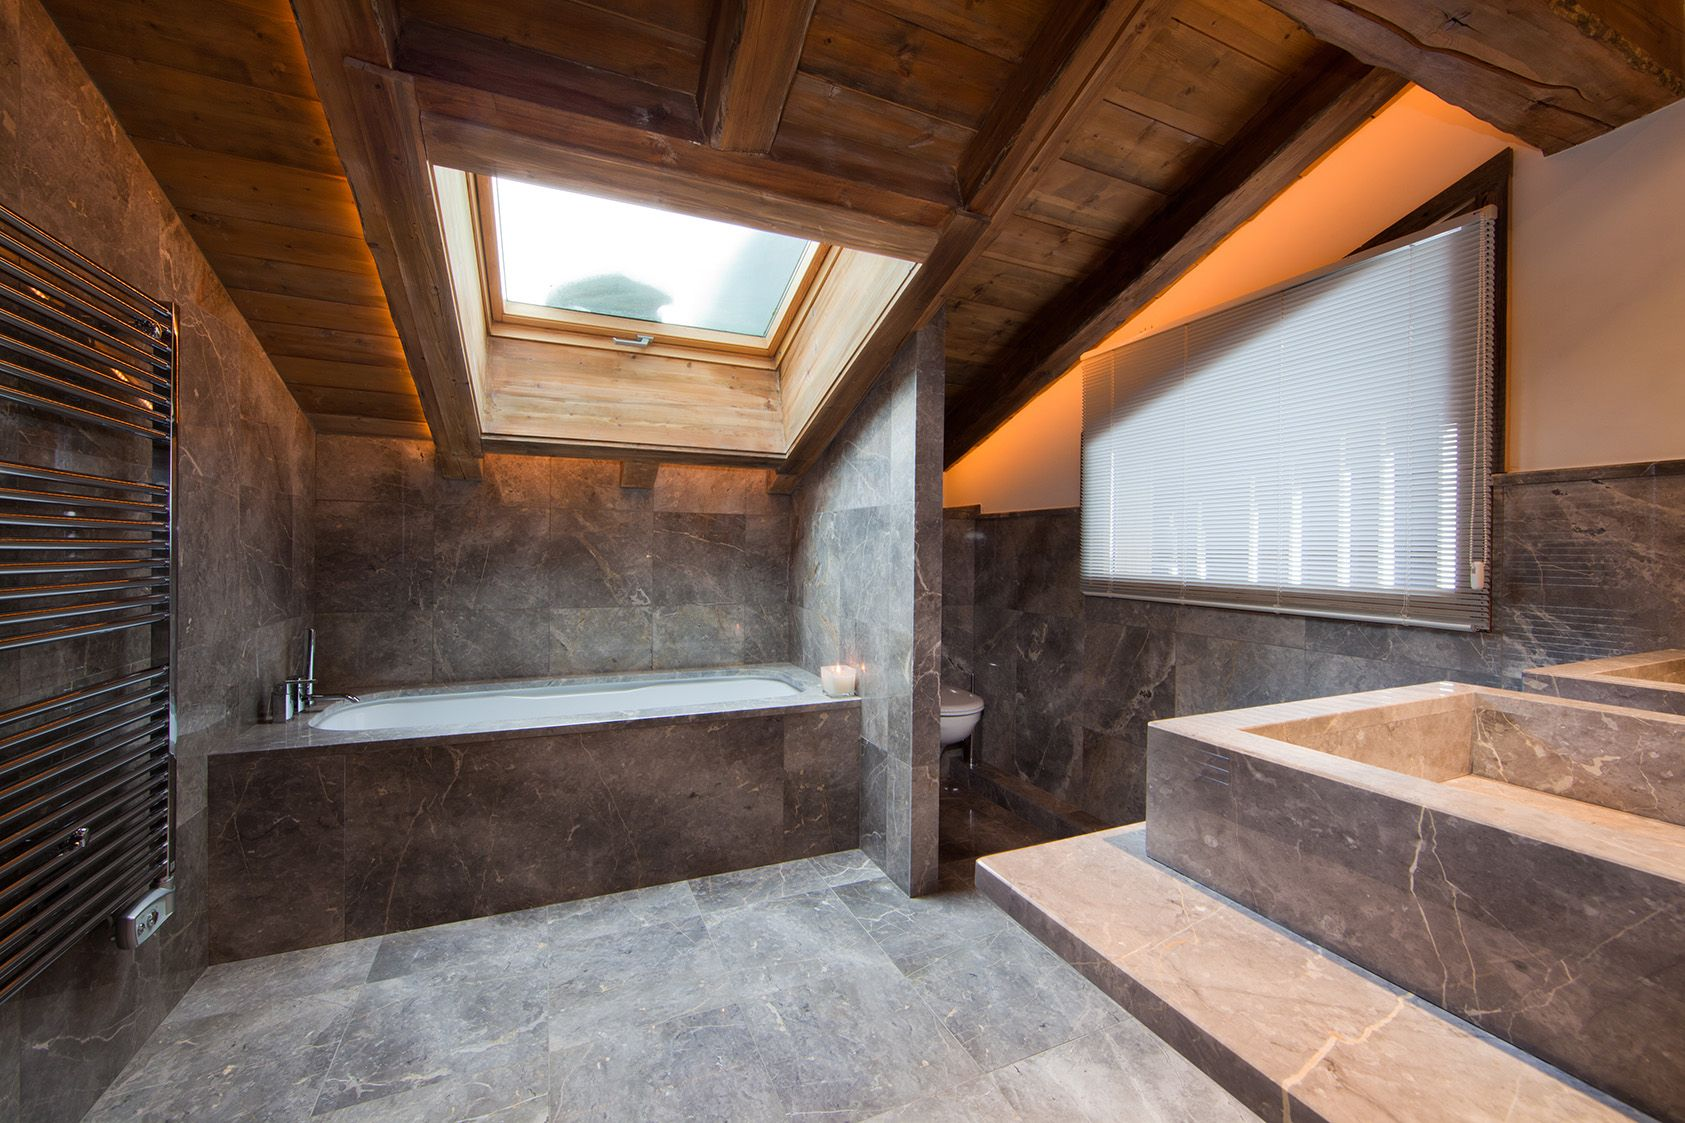 chalet luxe -ikone -bathroom -edge-ikone -ikhome -luxury chalet ...